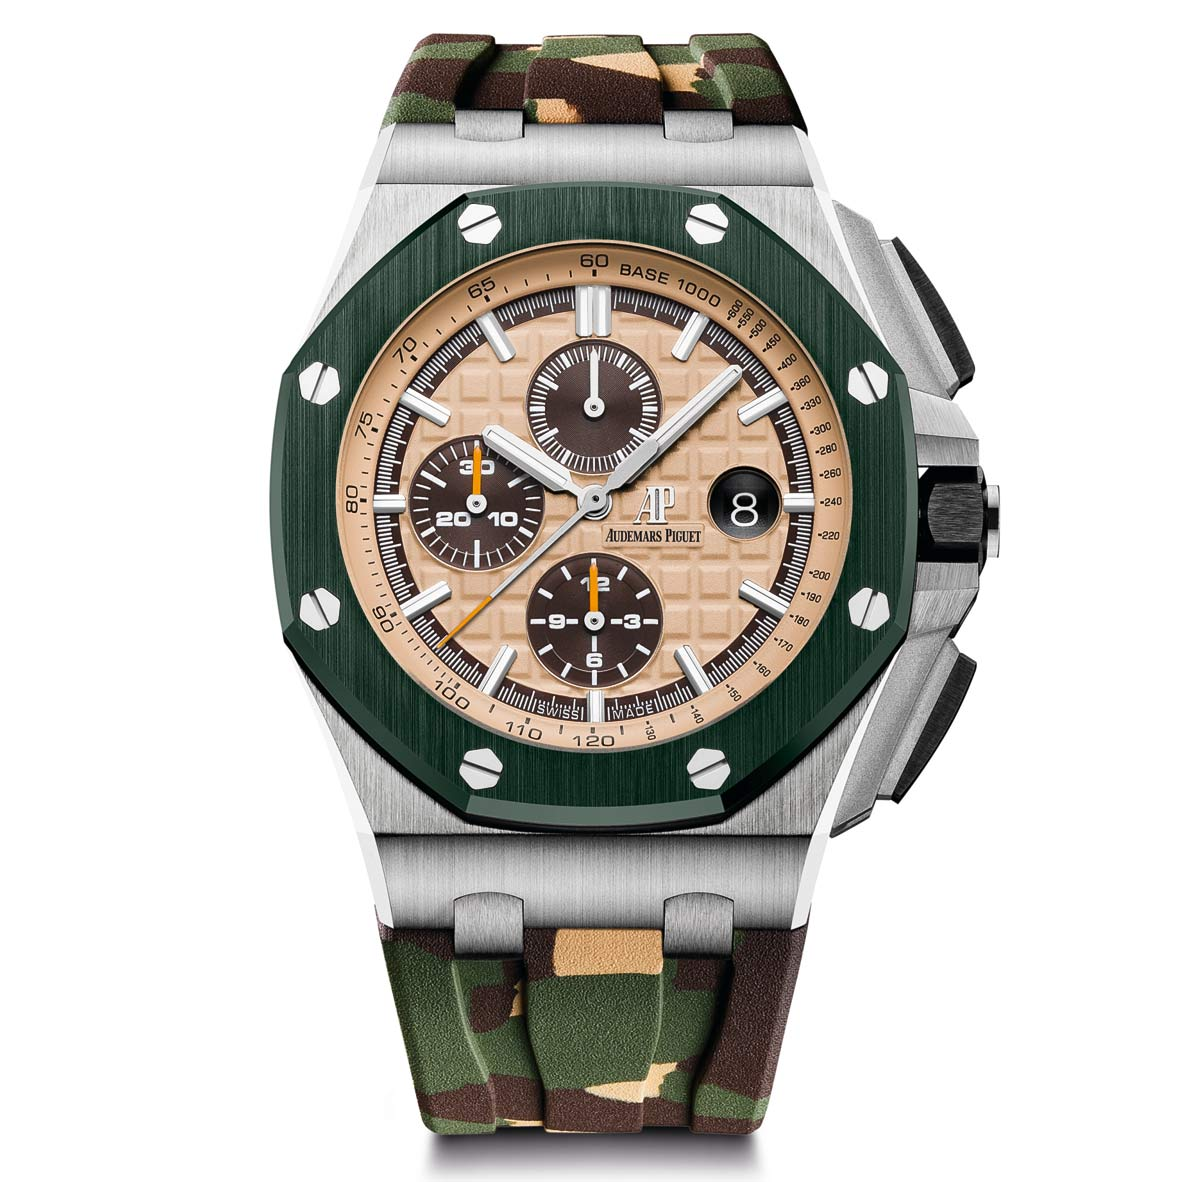 Sihh 2018 audemars piguet royal oak offshore chronograph new 2018 models time and watches for Ap royal oak offshore chronograph